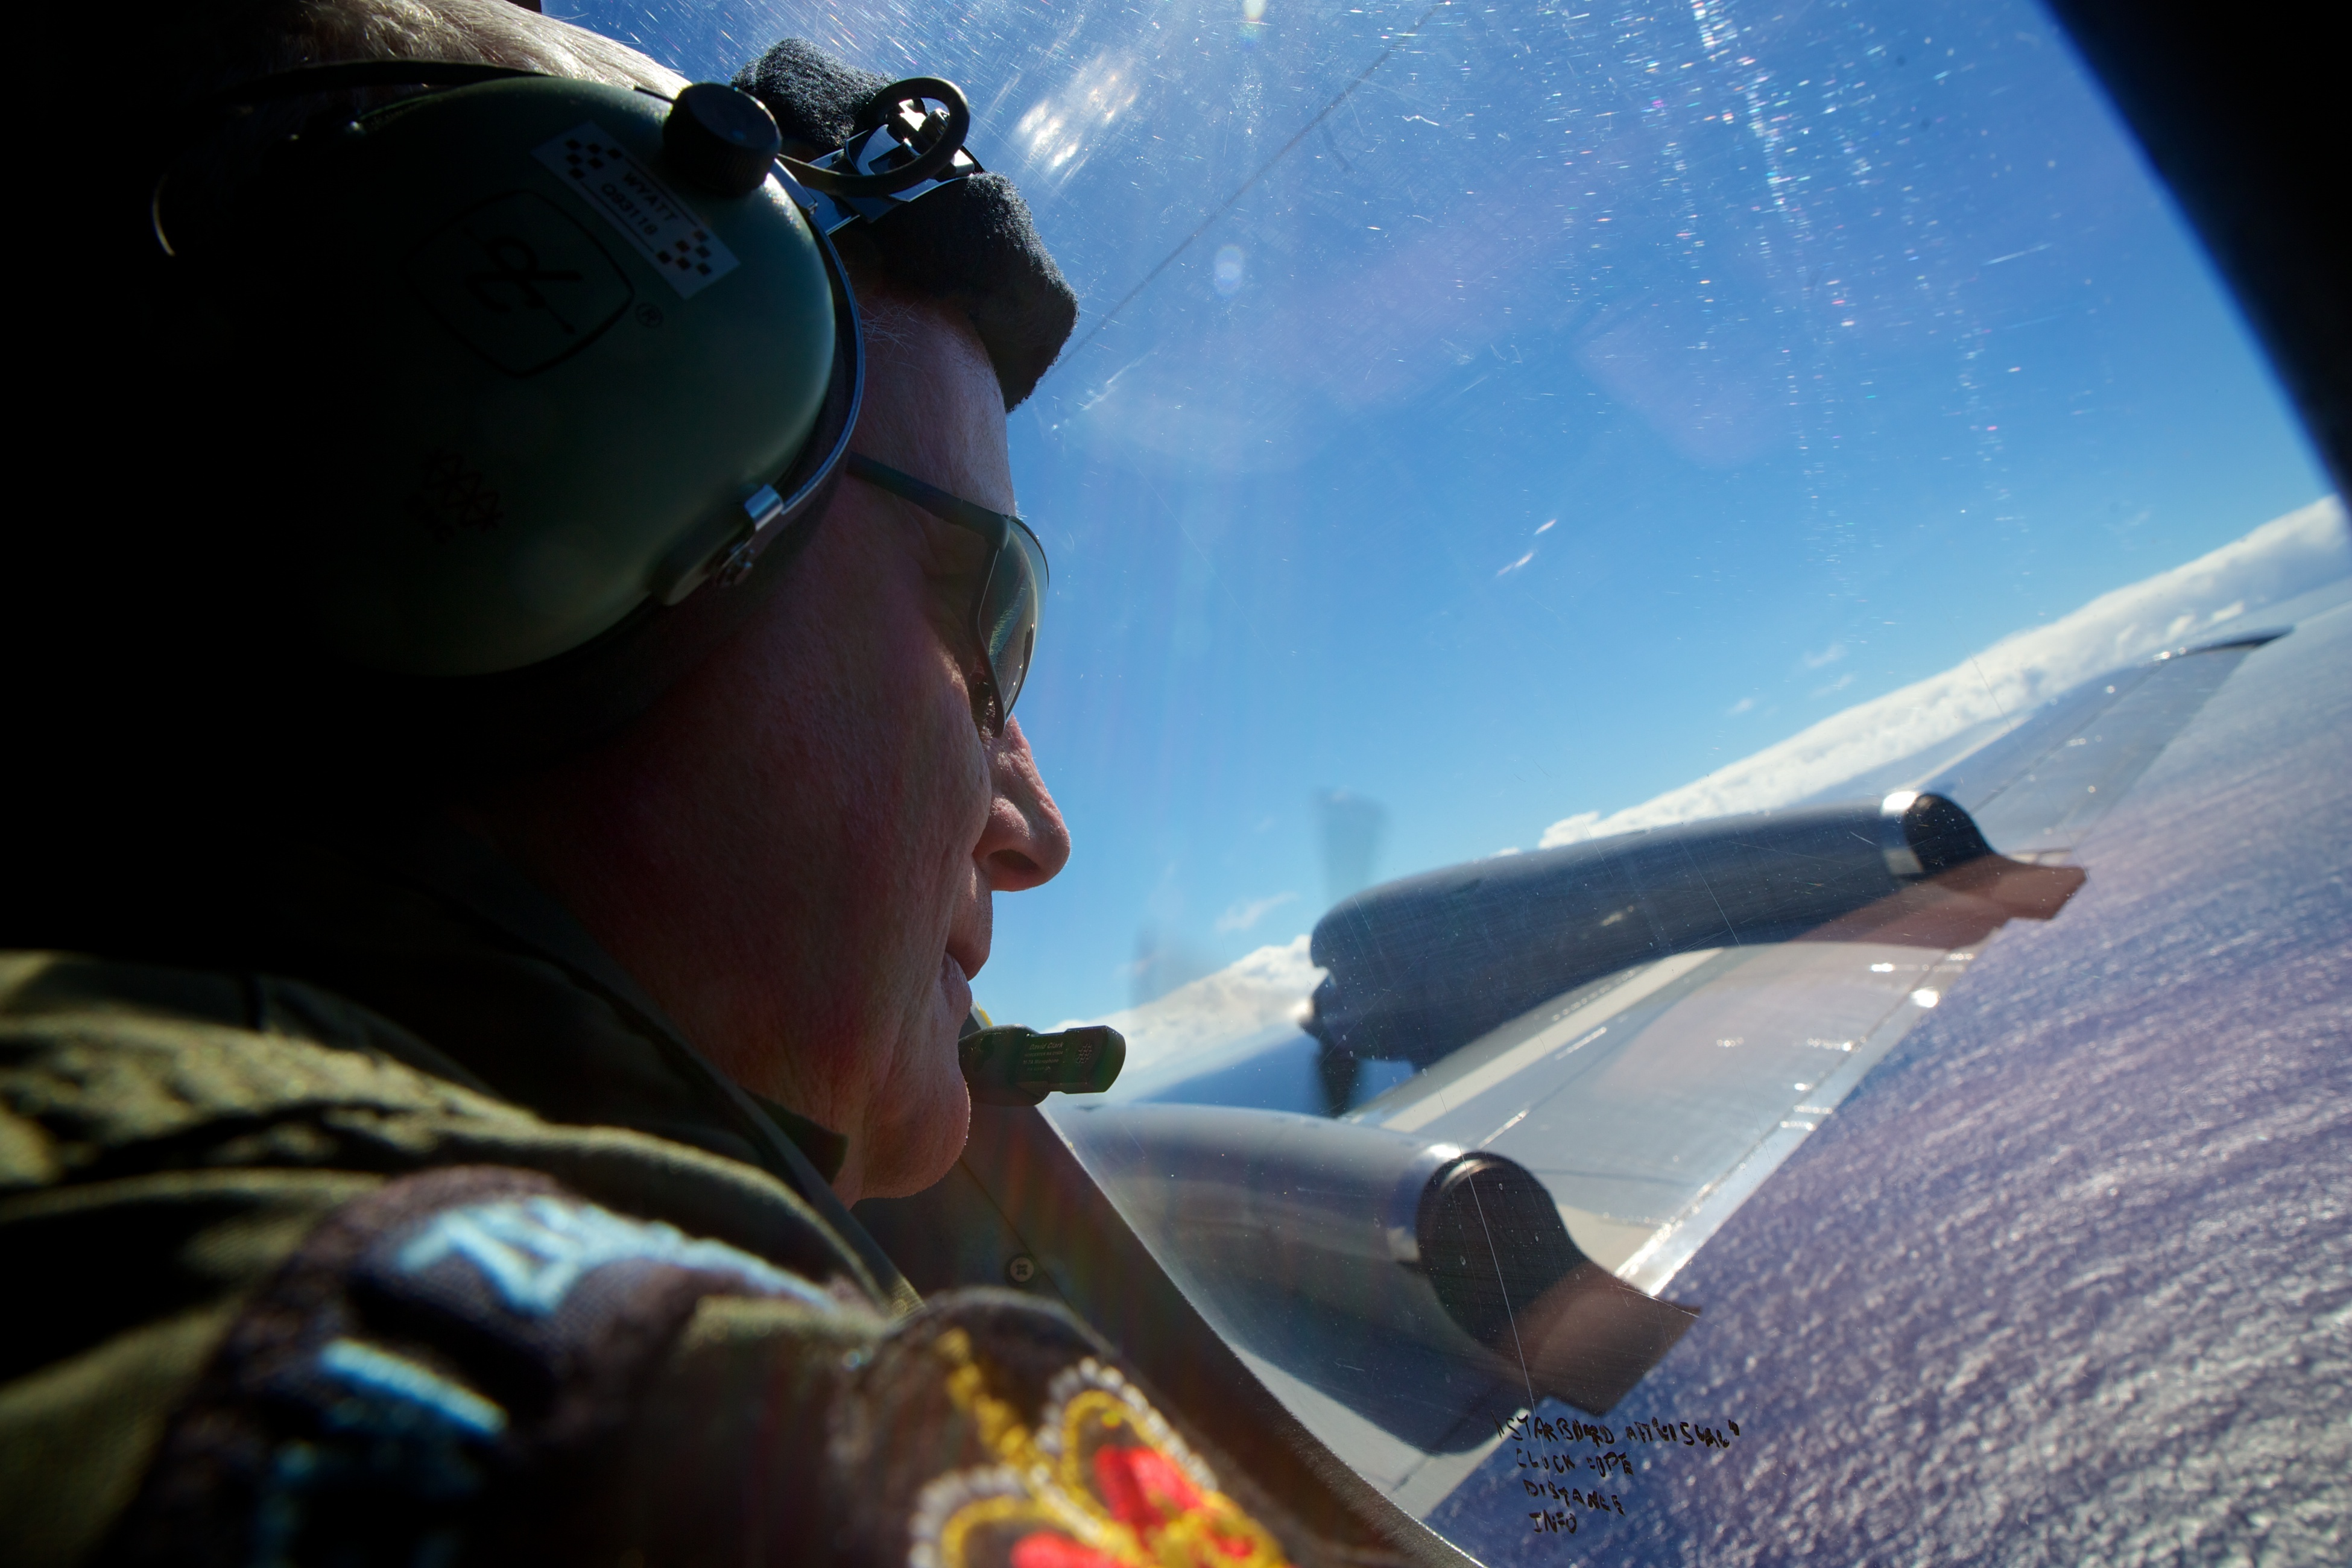 Sergeant Trent Wyatt,  a crew member of a Royal New Zealand Air Force P-3 Orion, takes part in the search for the missing Malaysia Airlines Flight MH370 over the Indian Ocean on April 11, 2014